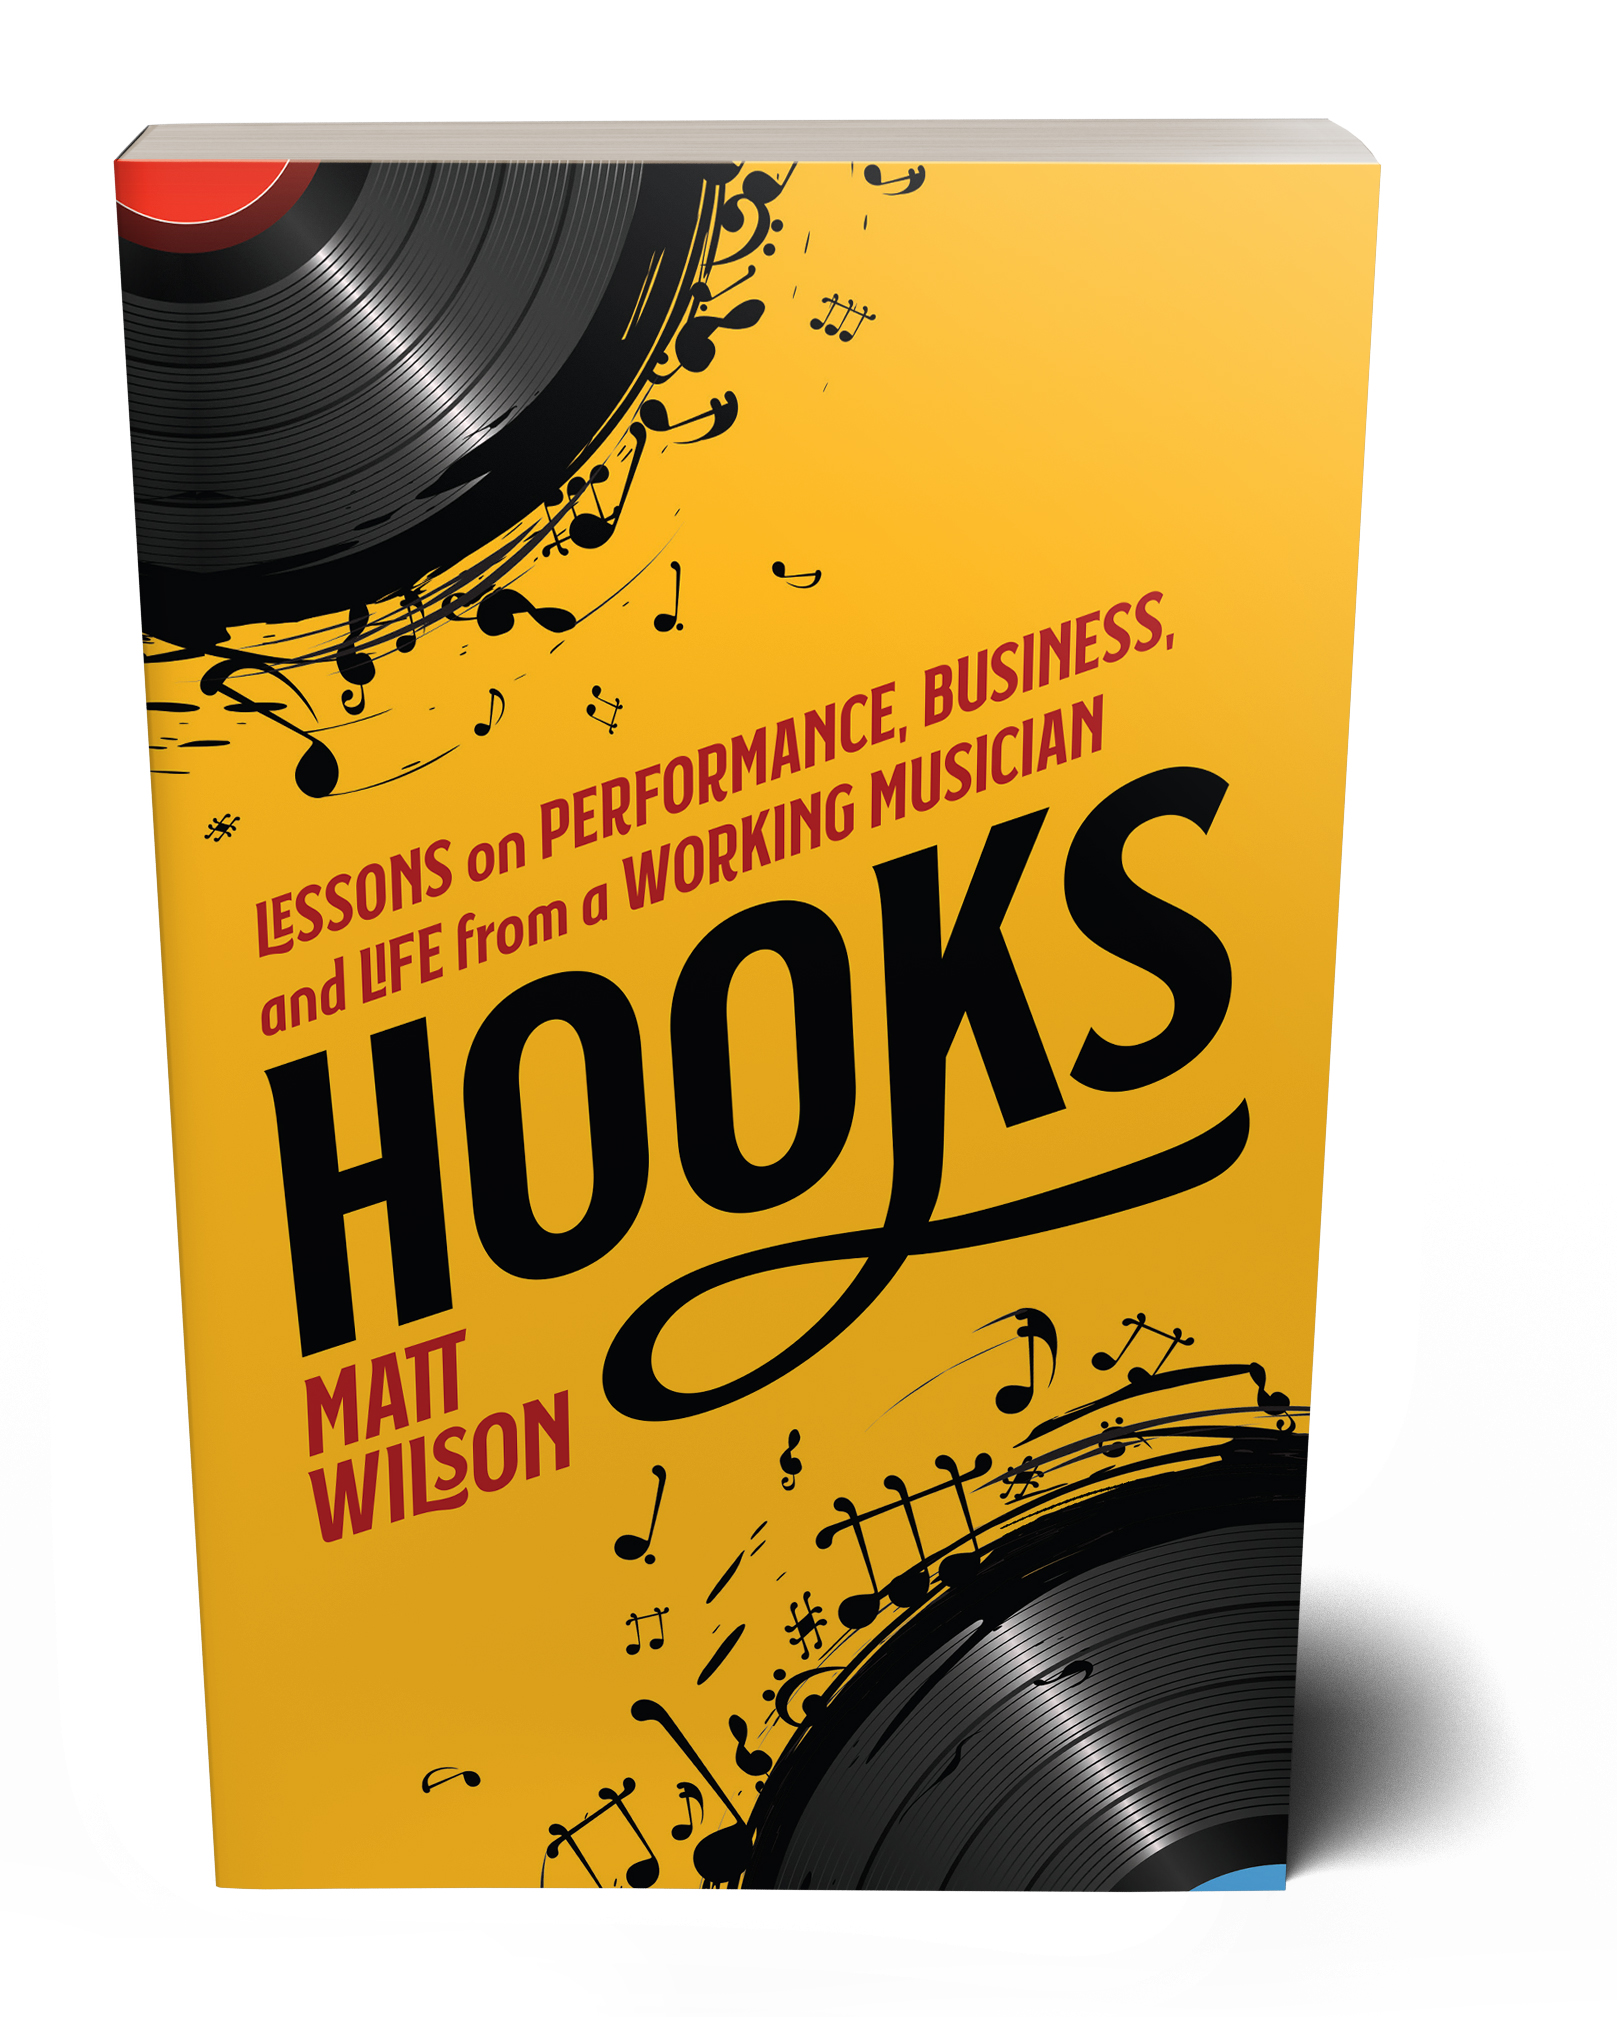 Hooks: Lessons on Performance, Business, and Life from a Working Musician